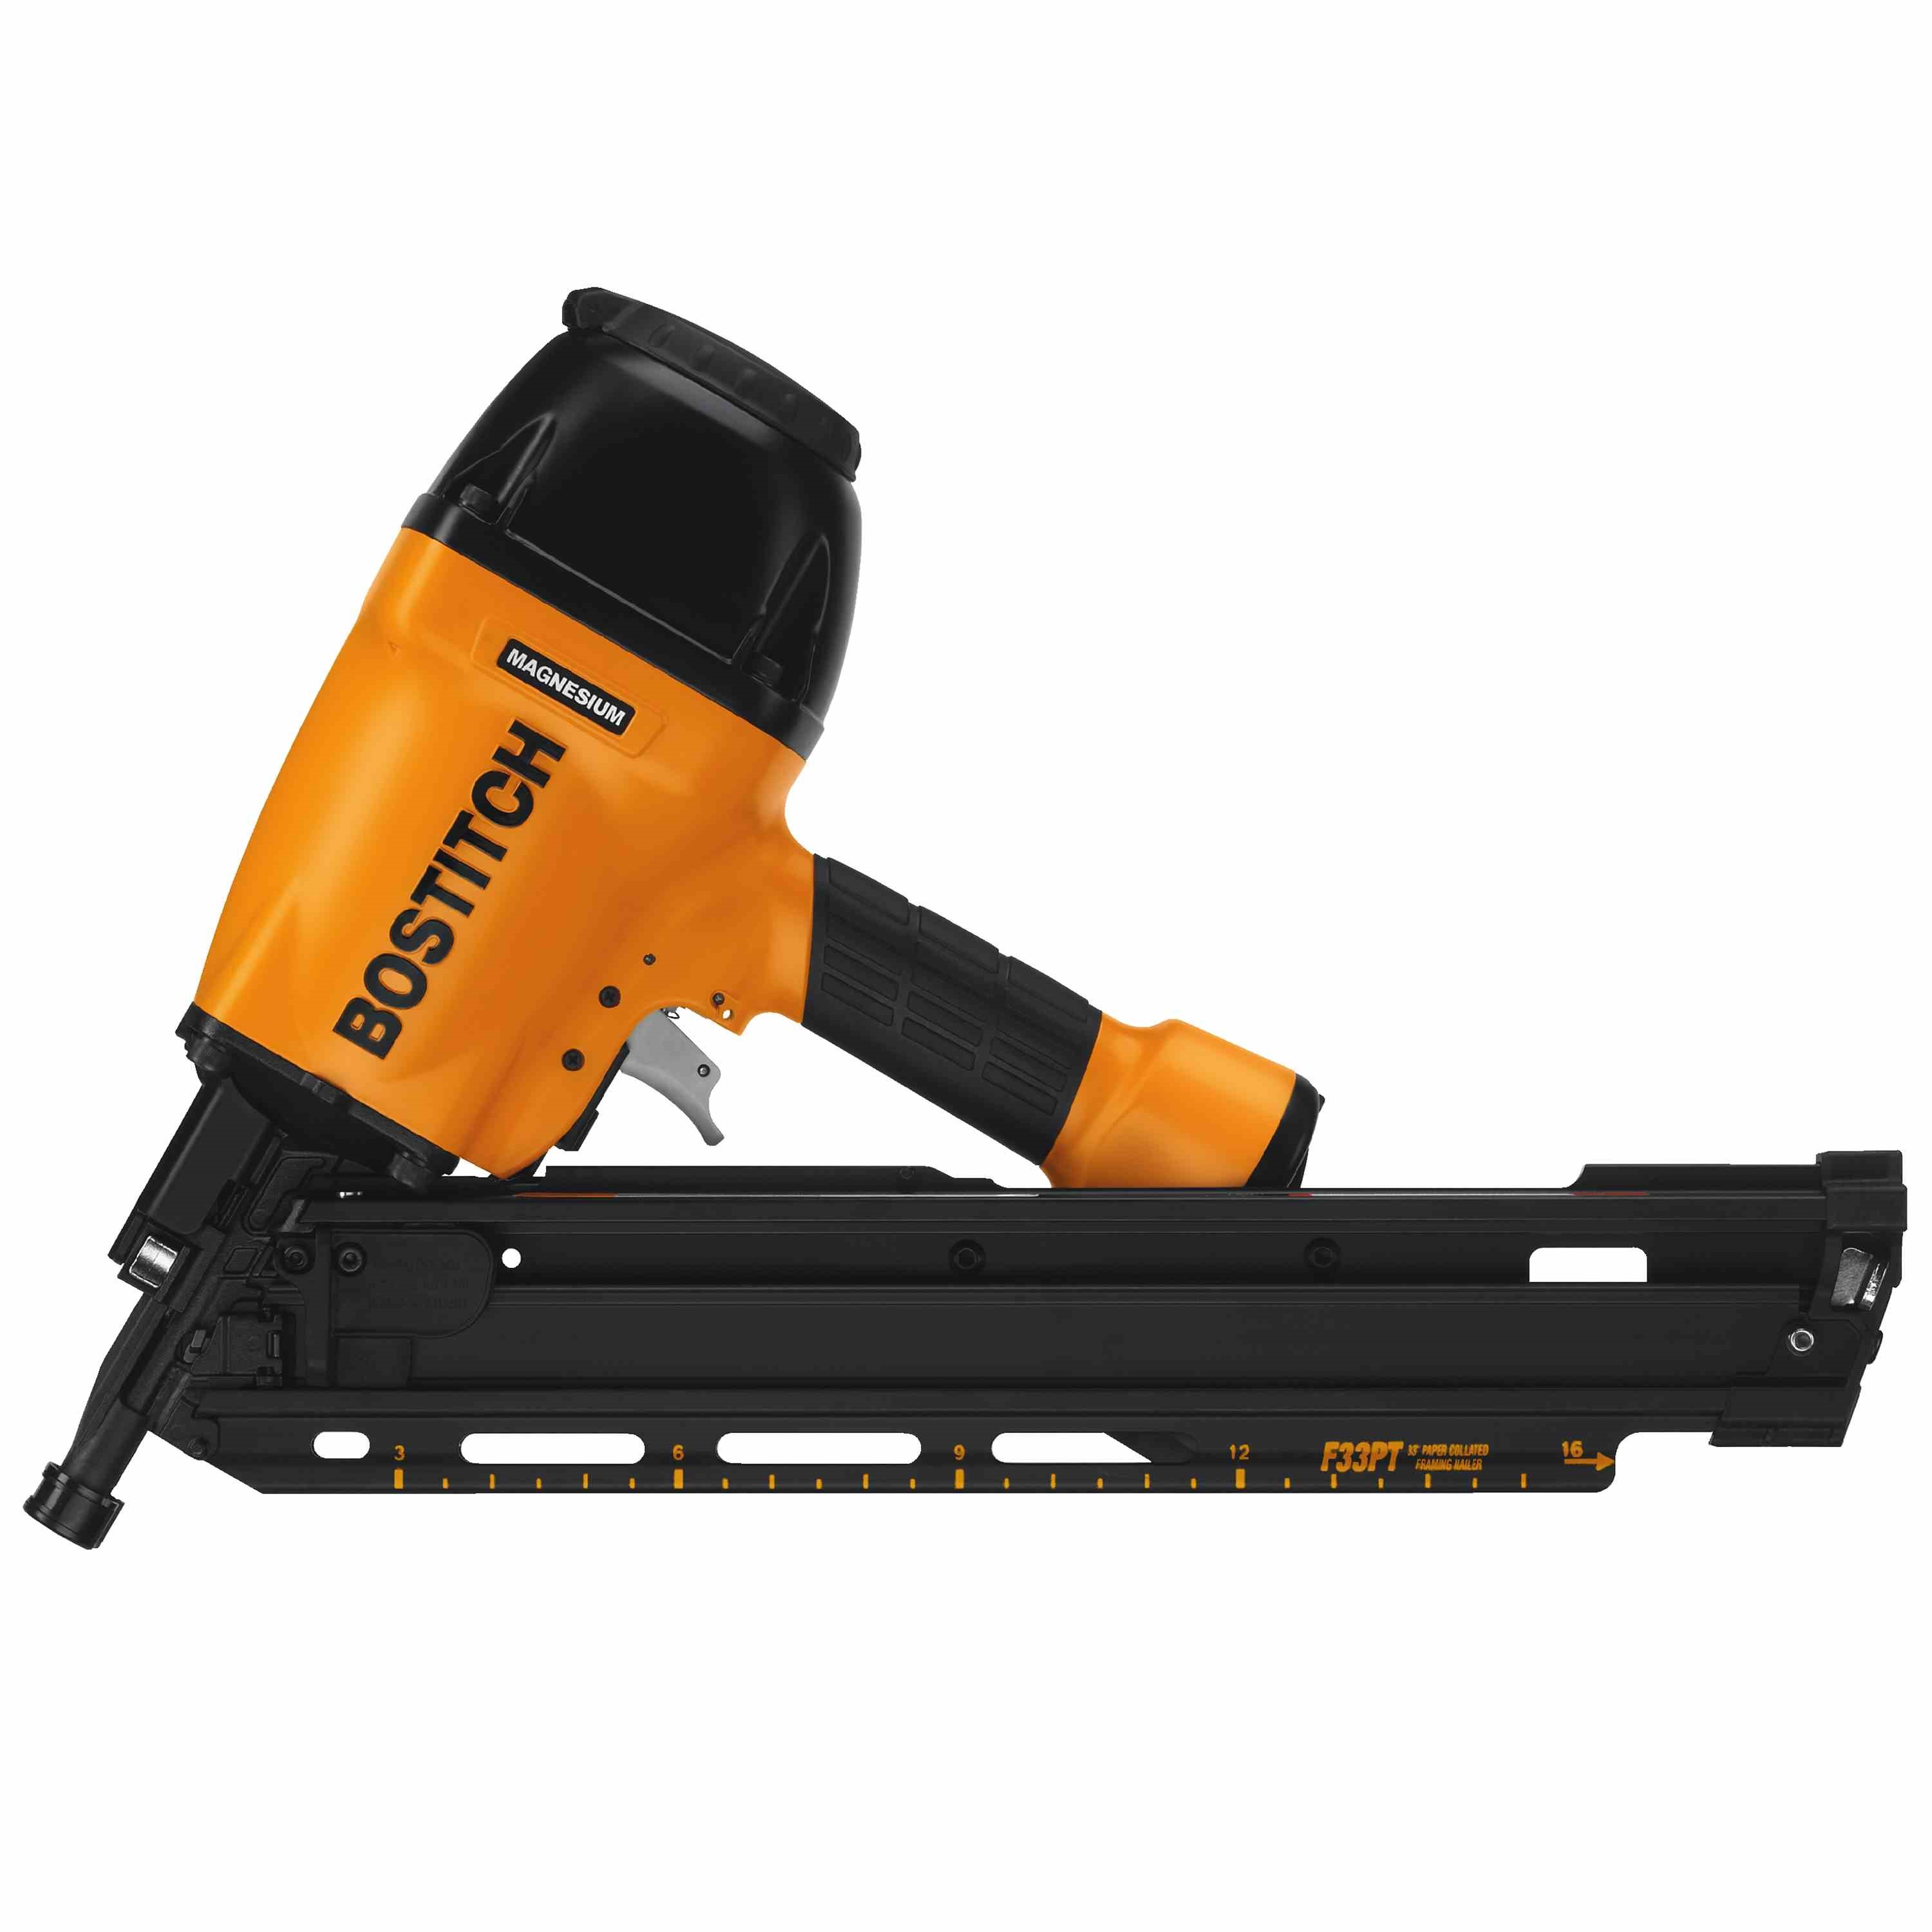 Bostitch - 33 degree Paper Tape Framing Nailer - F33PT